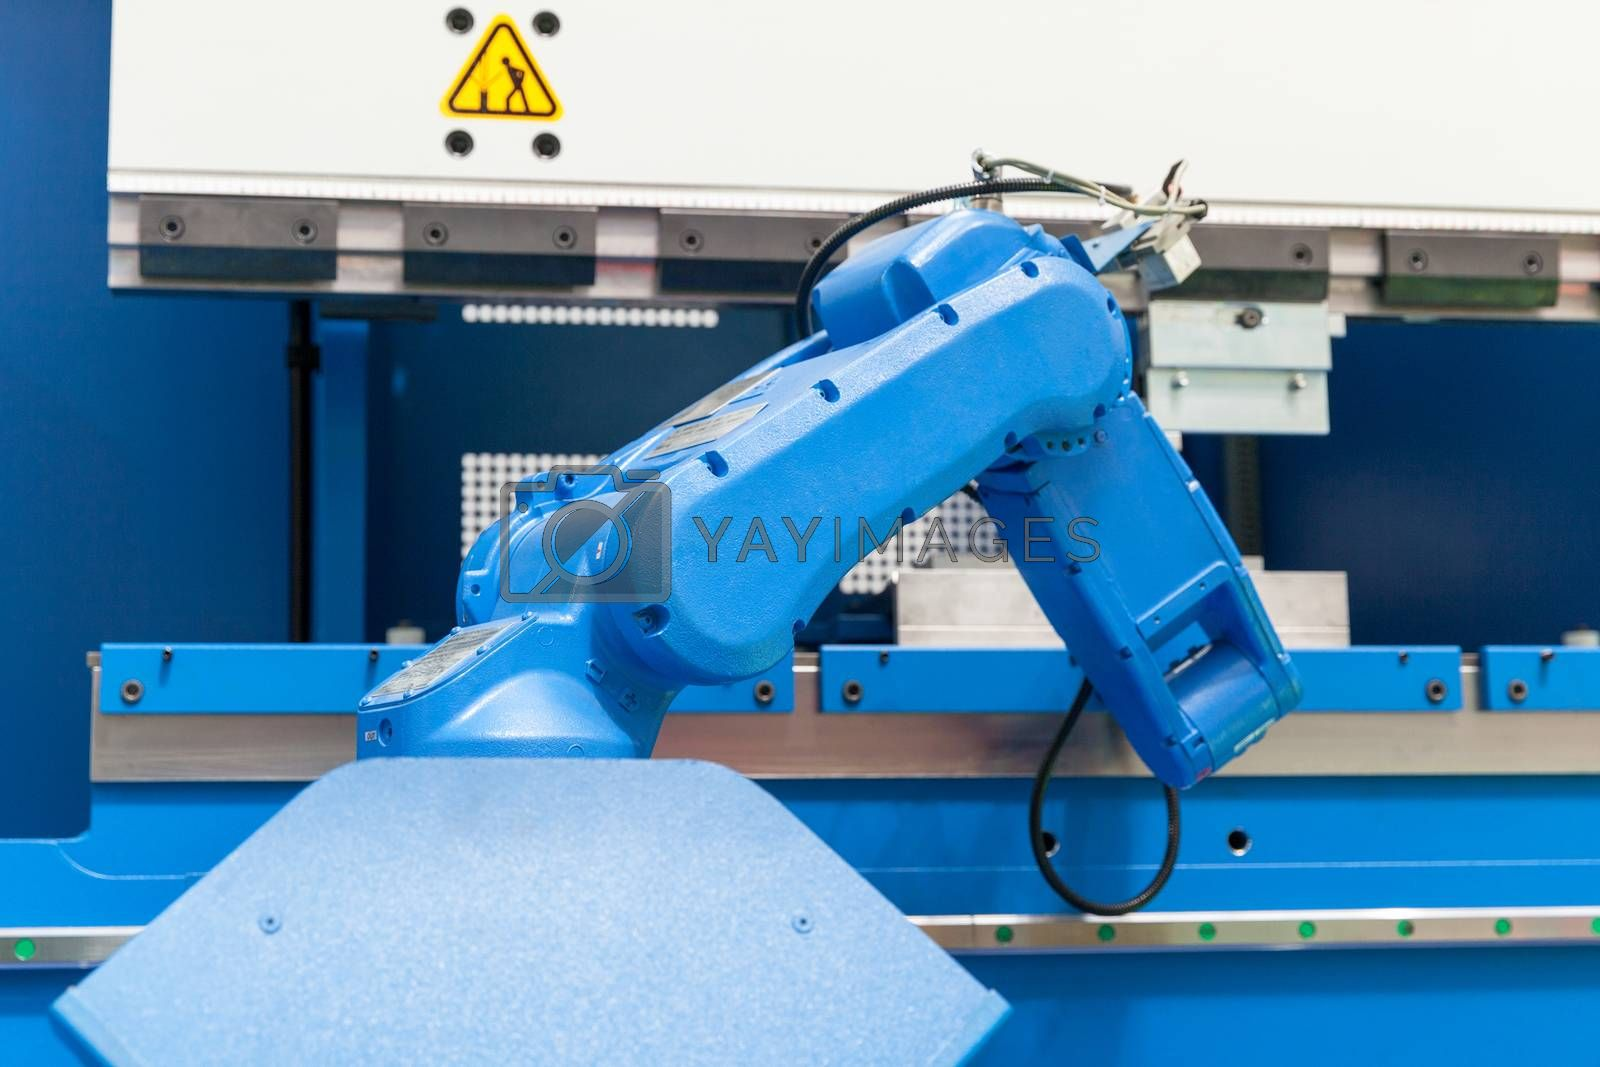 Assembly, machine tending, part transfer, pick and place robot arm